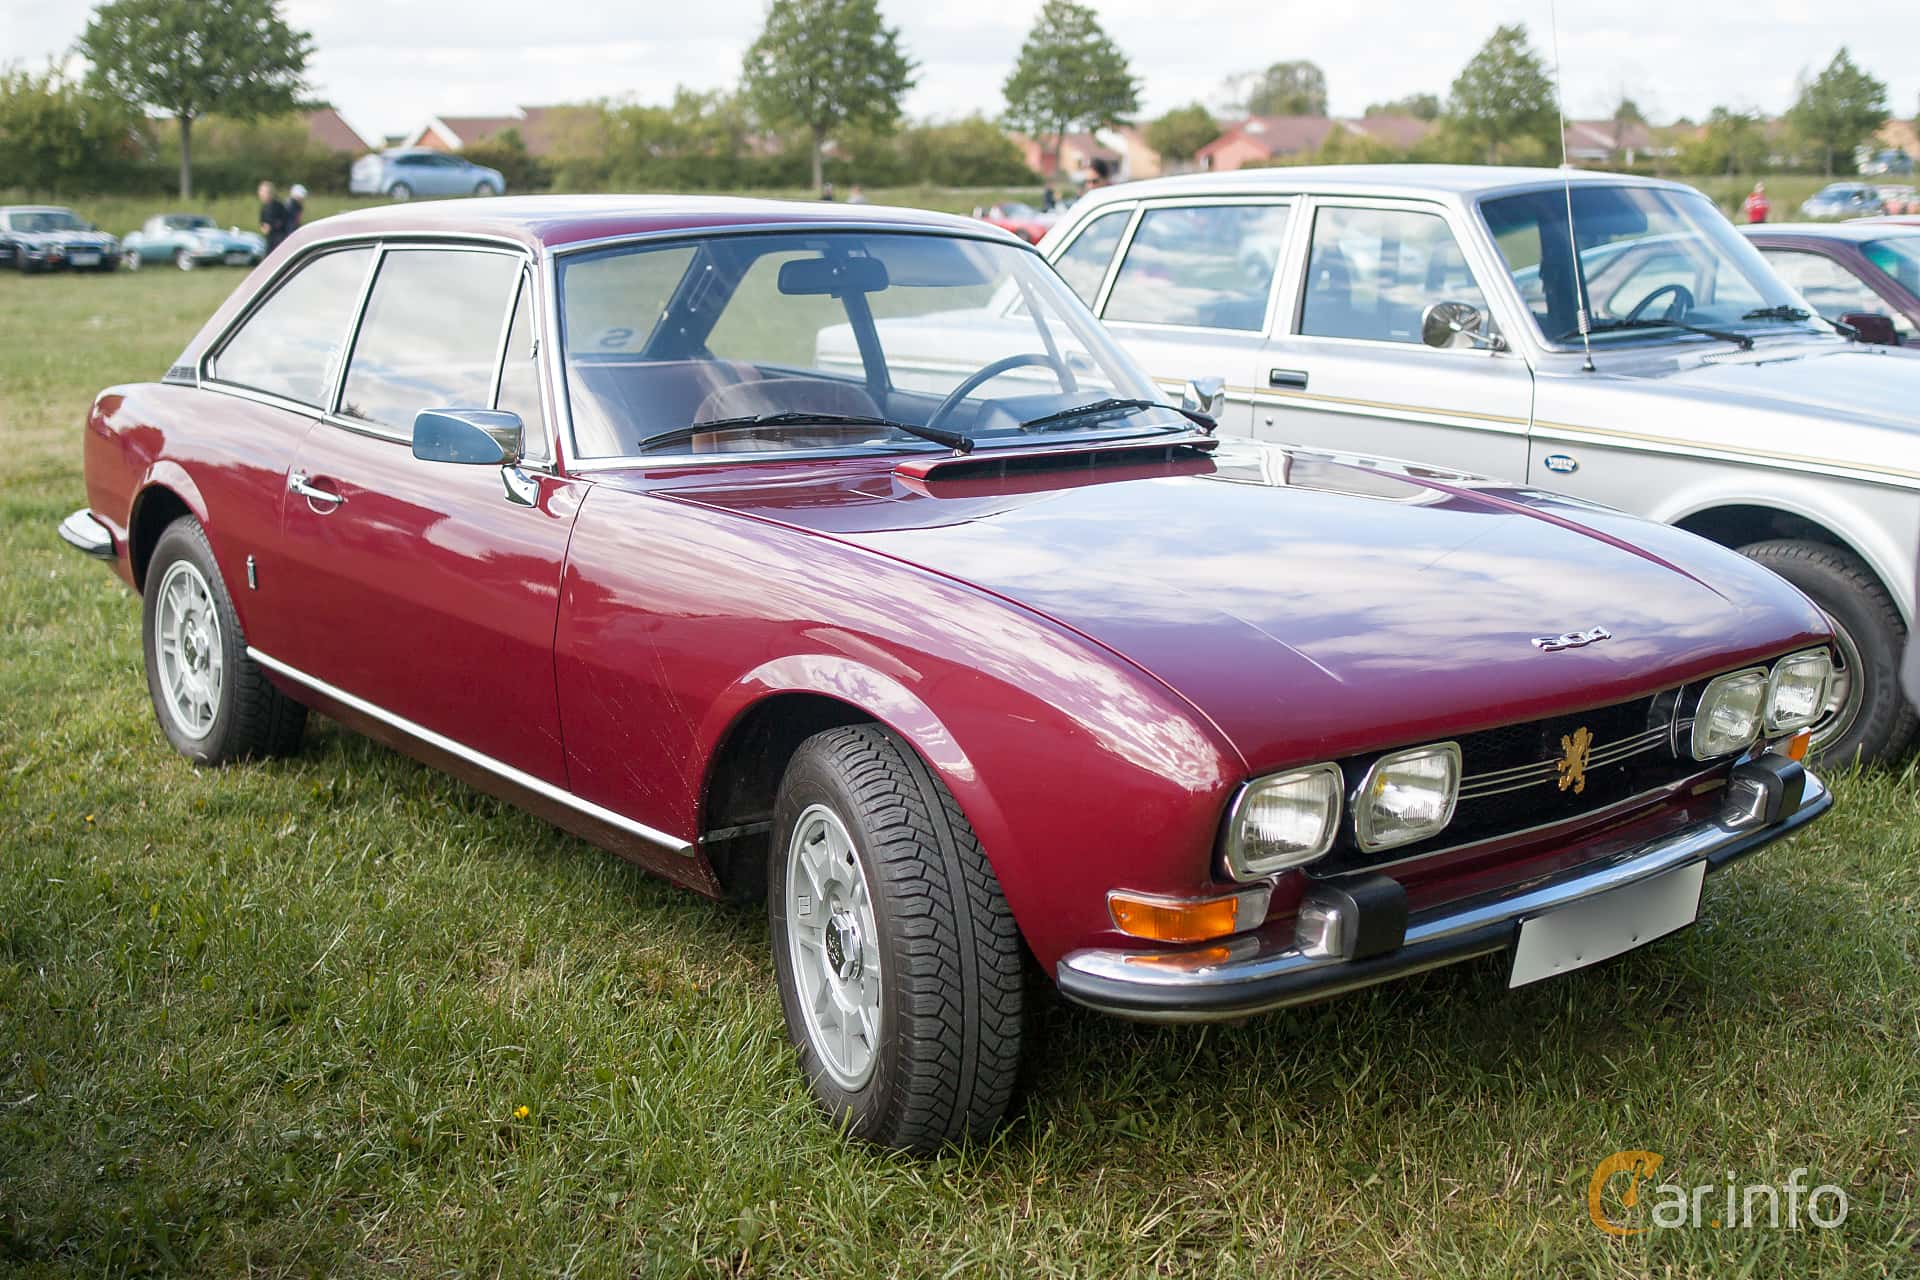 user images of peugeot 504 coupé